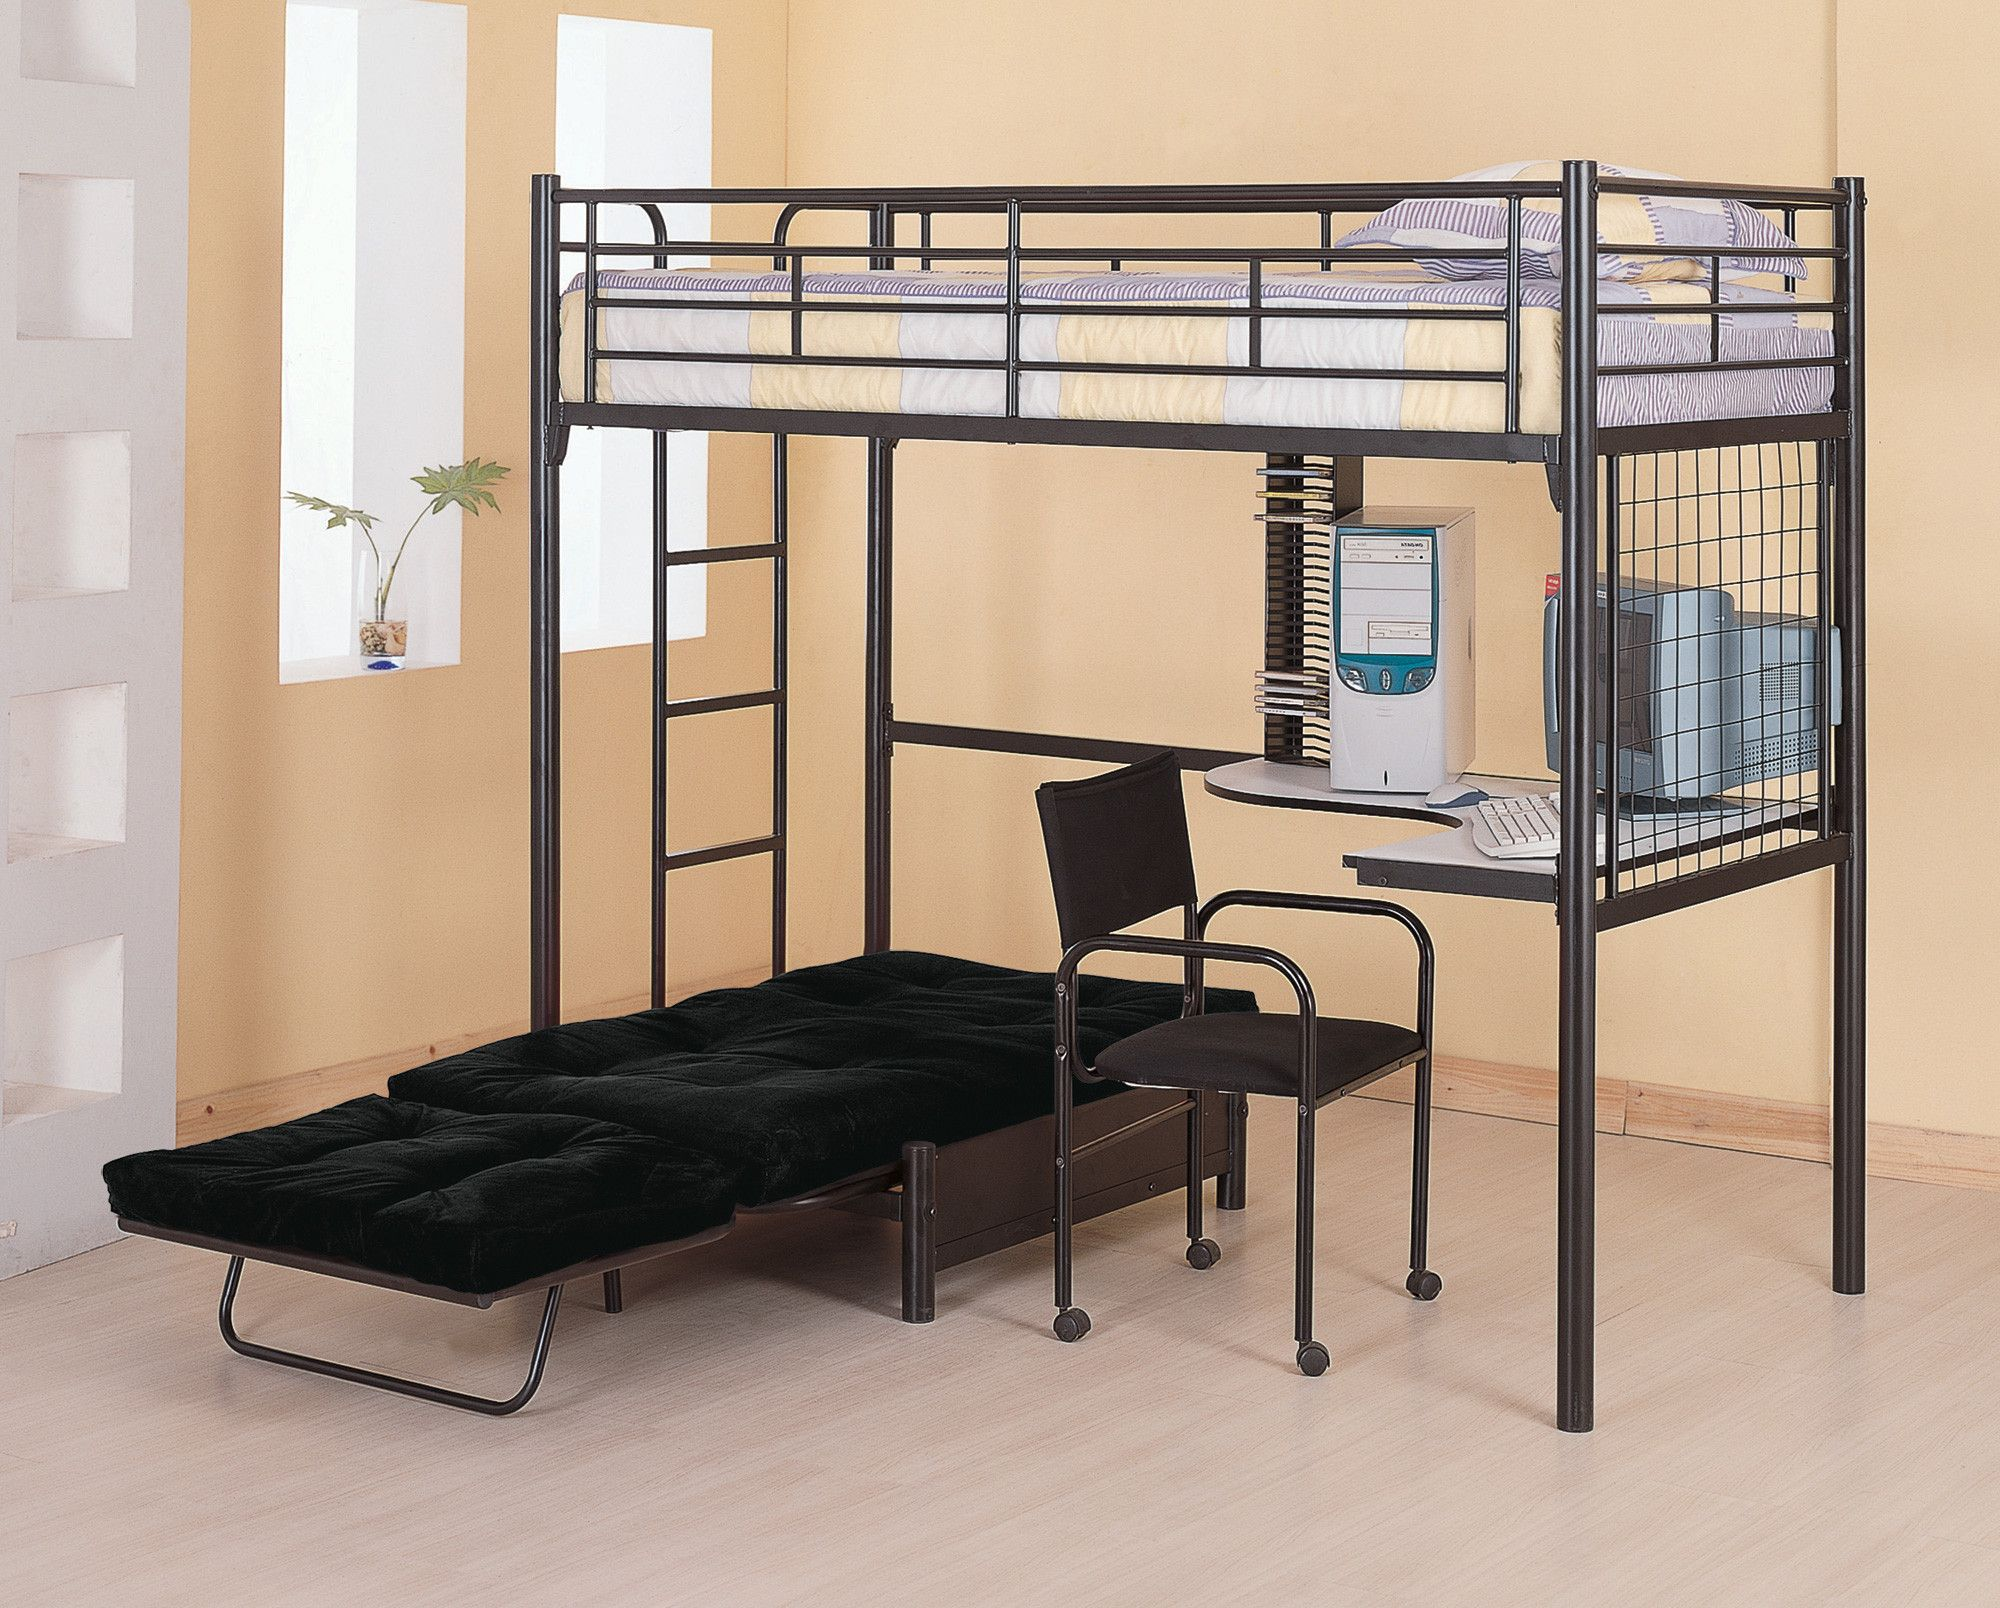 bunks twin loft bunk bed with futon chair  u0026 desk 2209 bunks twin loft bunk bed with futon chair  u0026 desk 2209   kids stuff      rh   pinterest